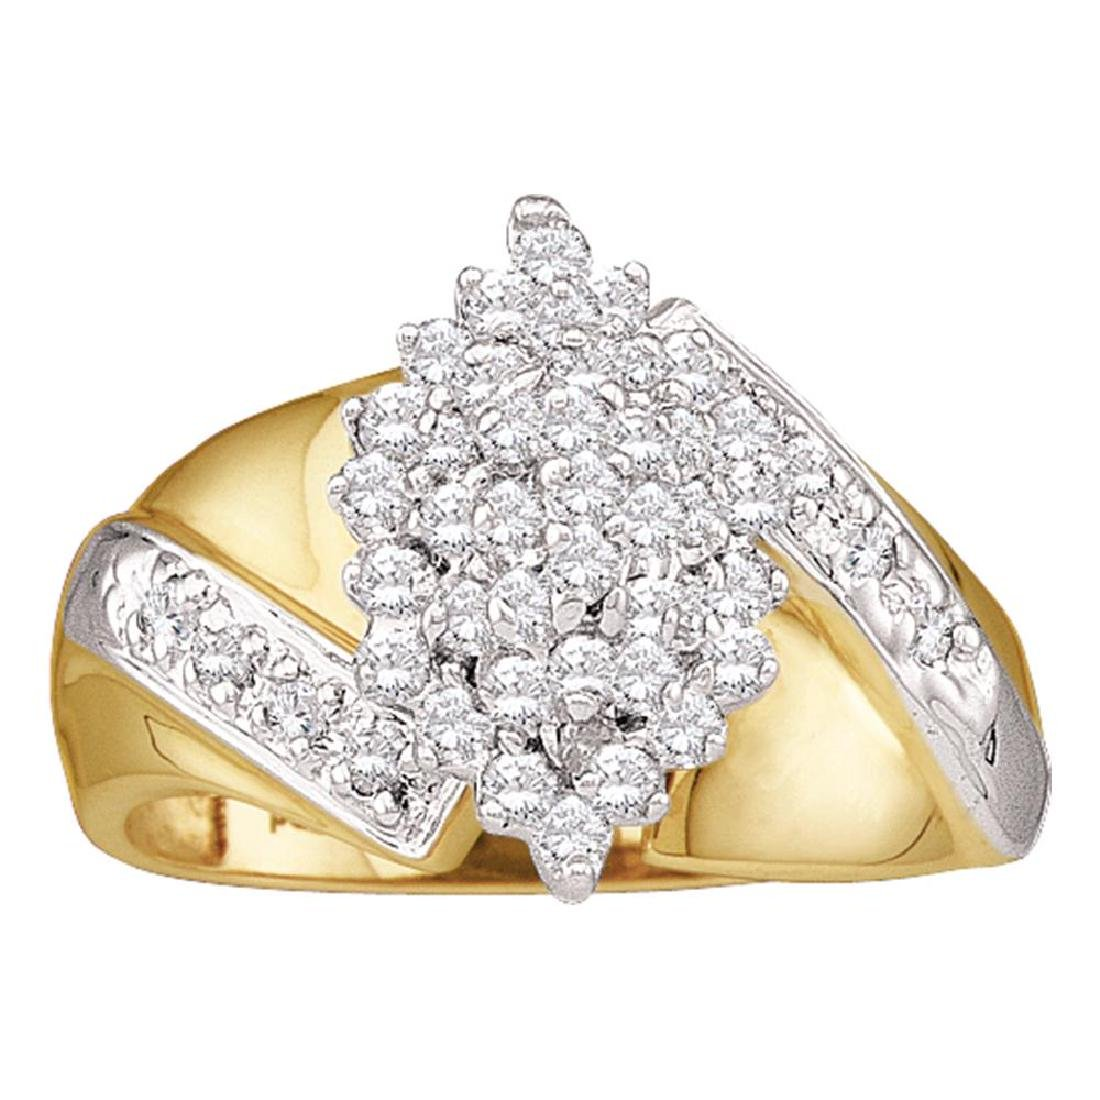 0.50 CTW Diamond Cluster Ring 14KT Yellow Gold -